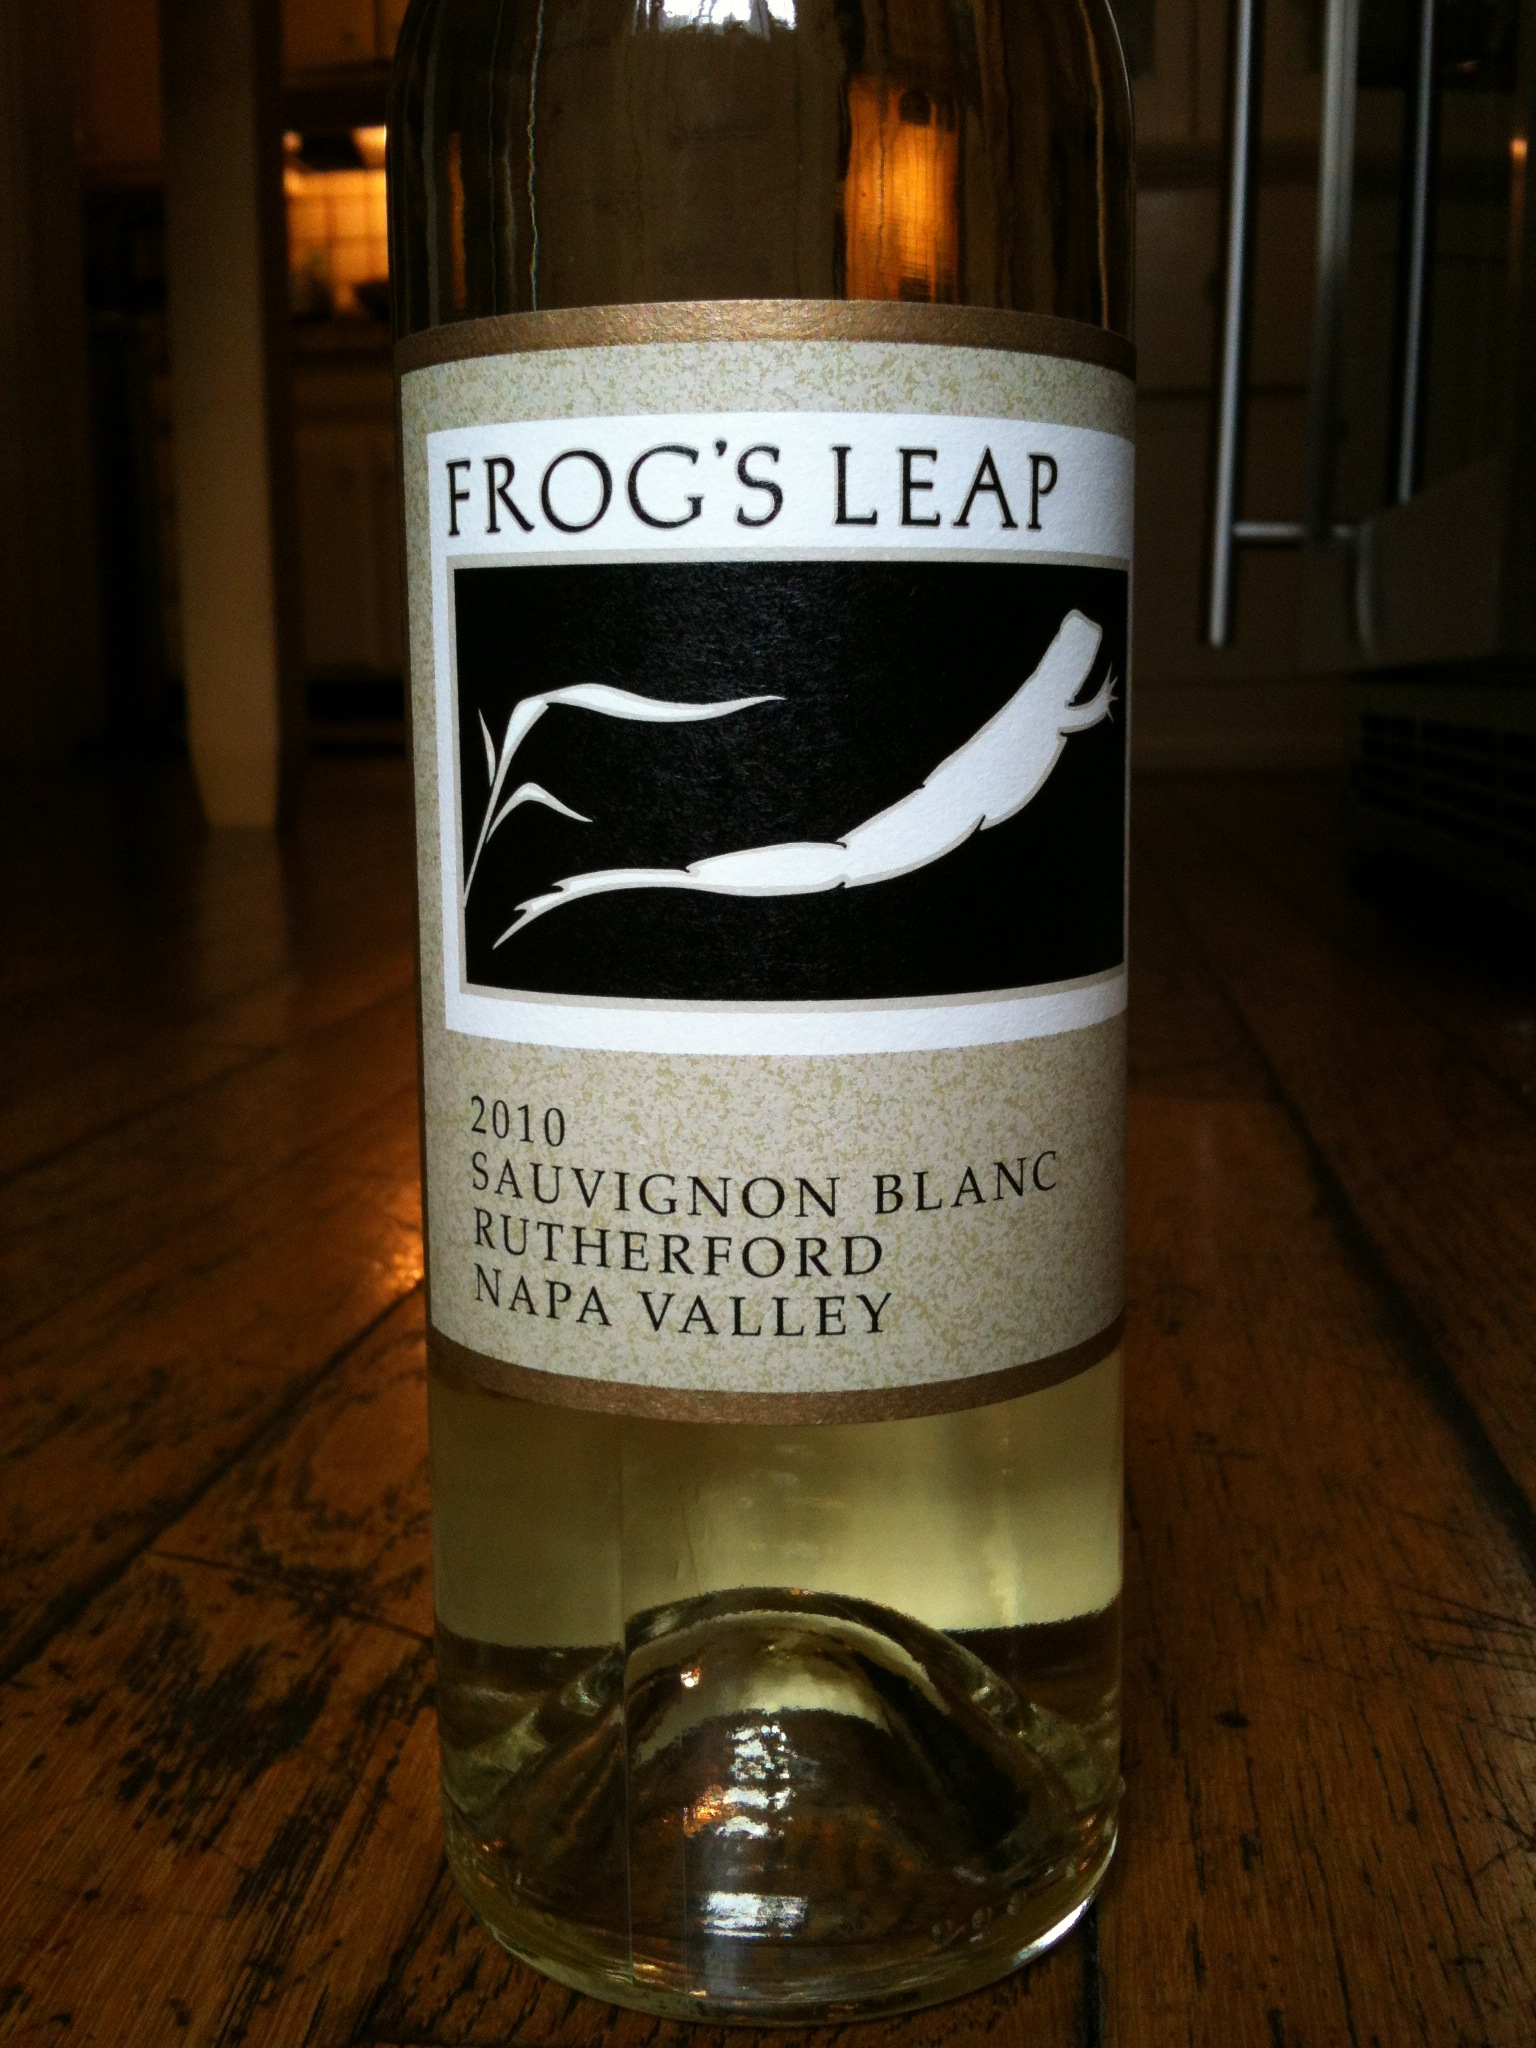 Frog's Leap 2010 Sauvignon Blanc Rutherford Napa Valley - Wine Review